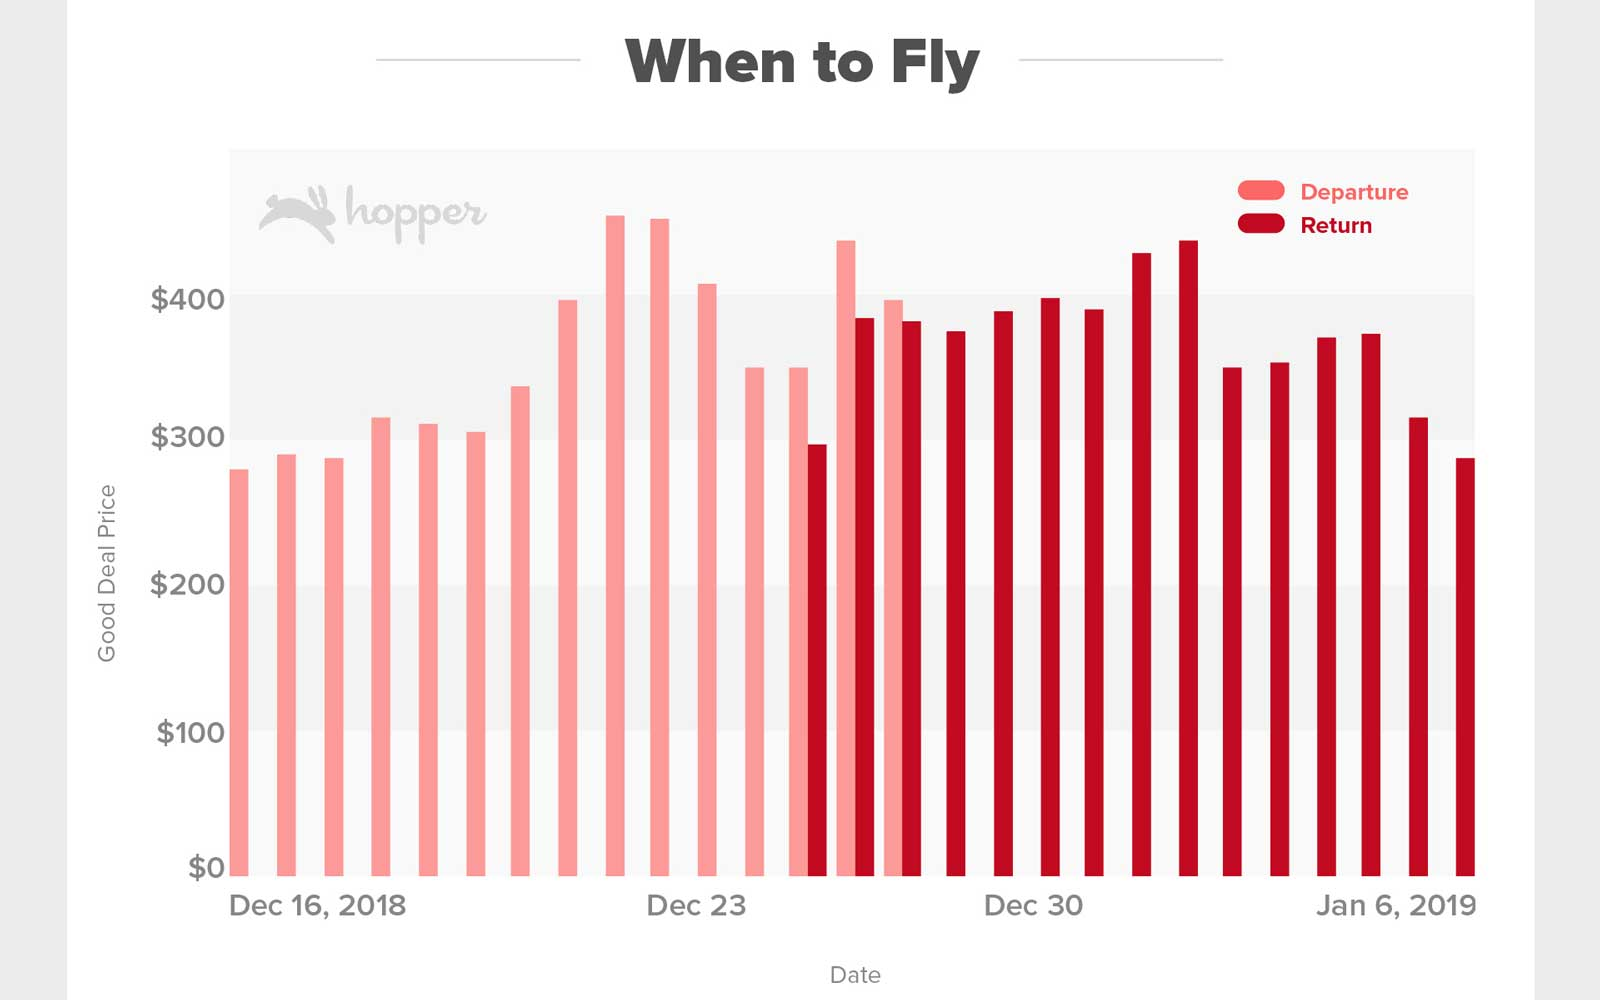 Flying a few days before the holiday and returning after the new year will bring travelers the greatest savings on flight prices.